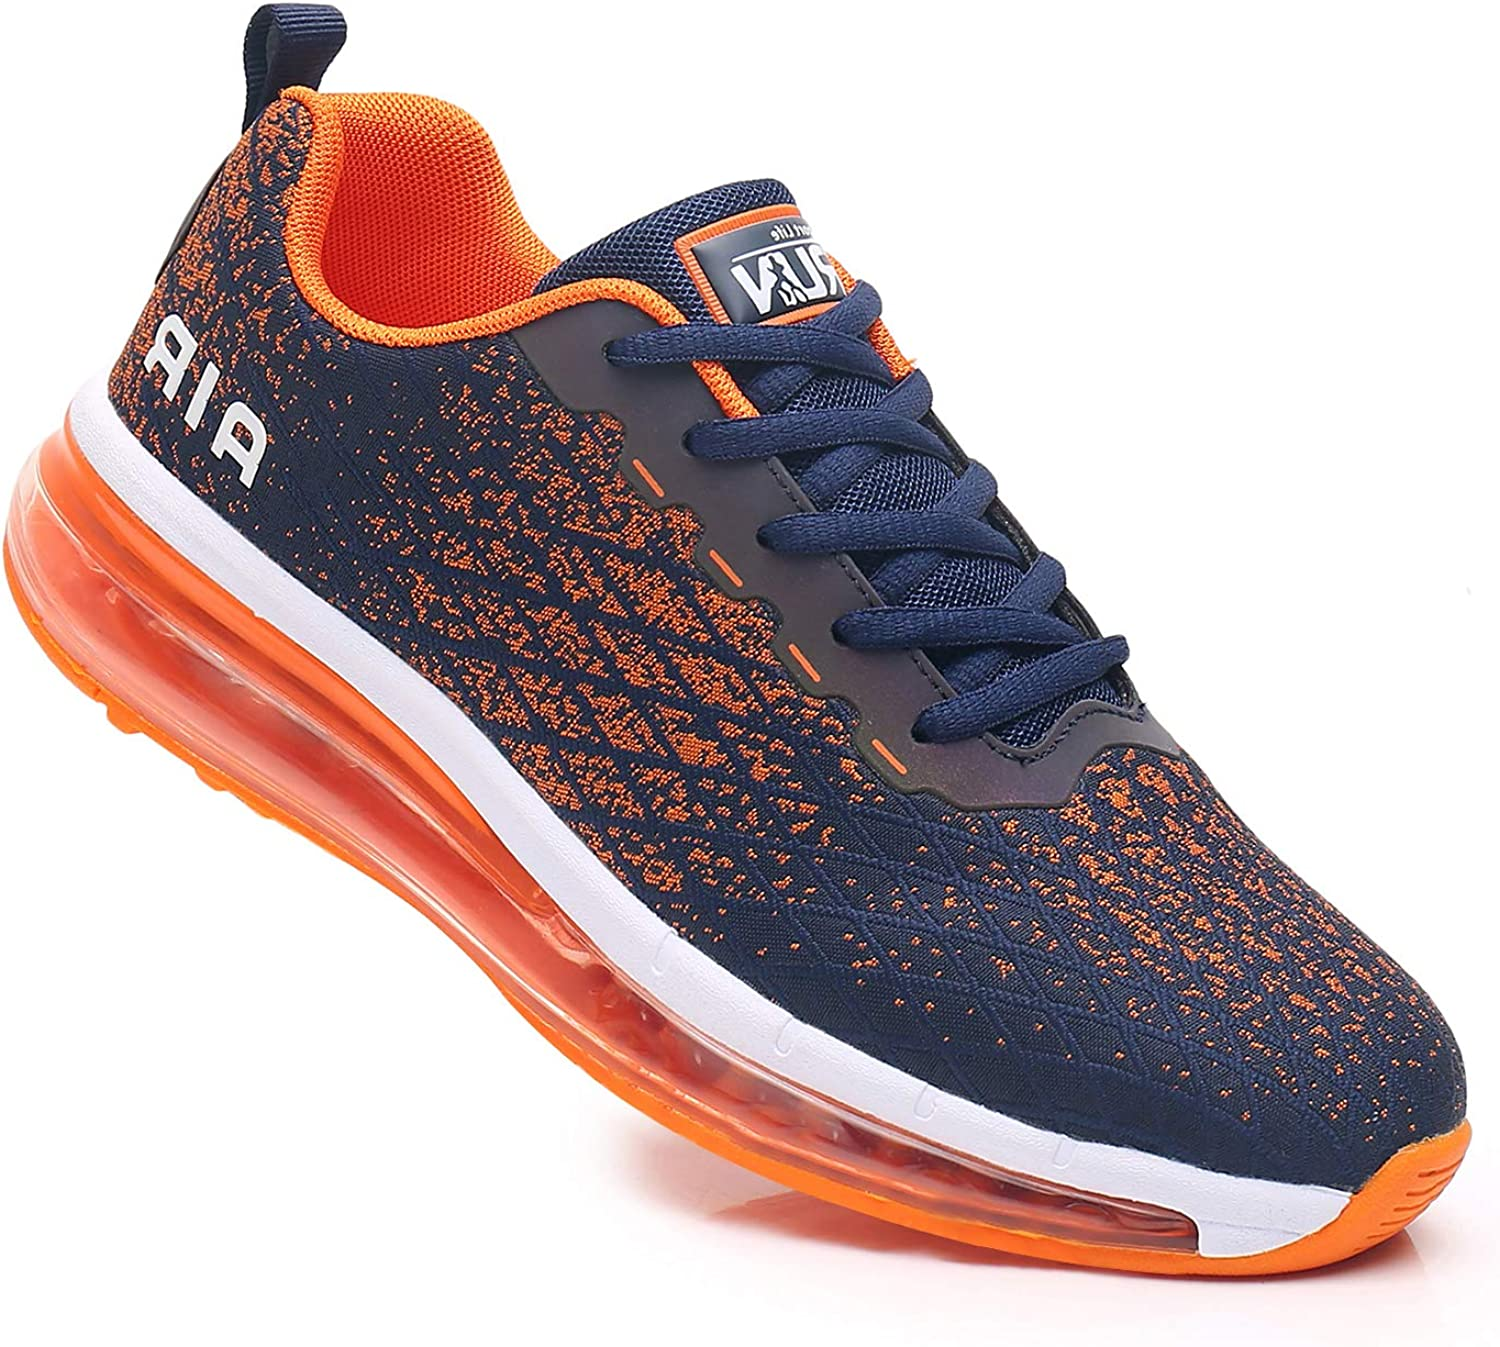 Axcone Mens Tennis Shoes Athletic Running Gym Jogging Air Cushion Workout Sneakers US7-US13